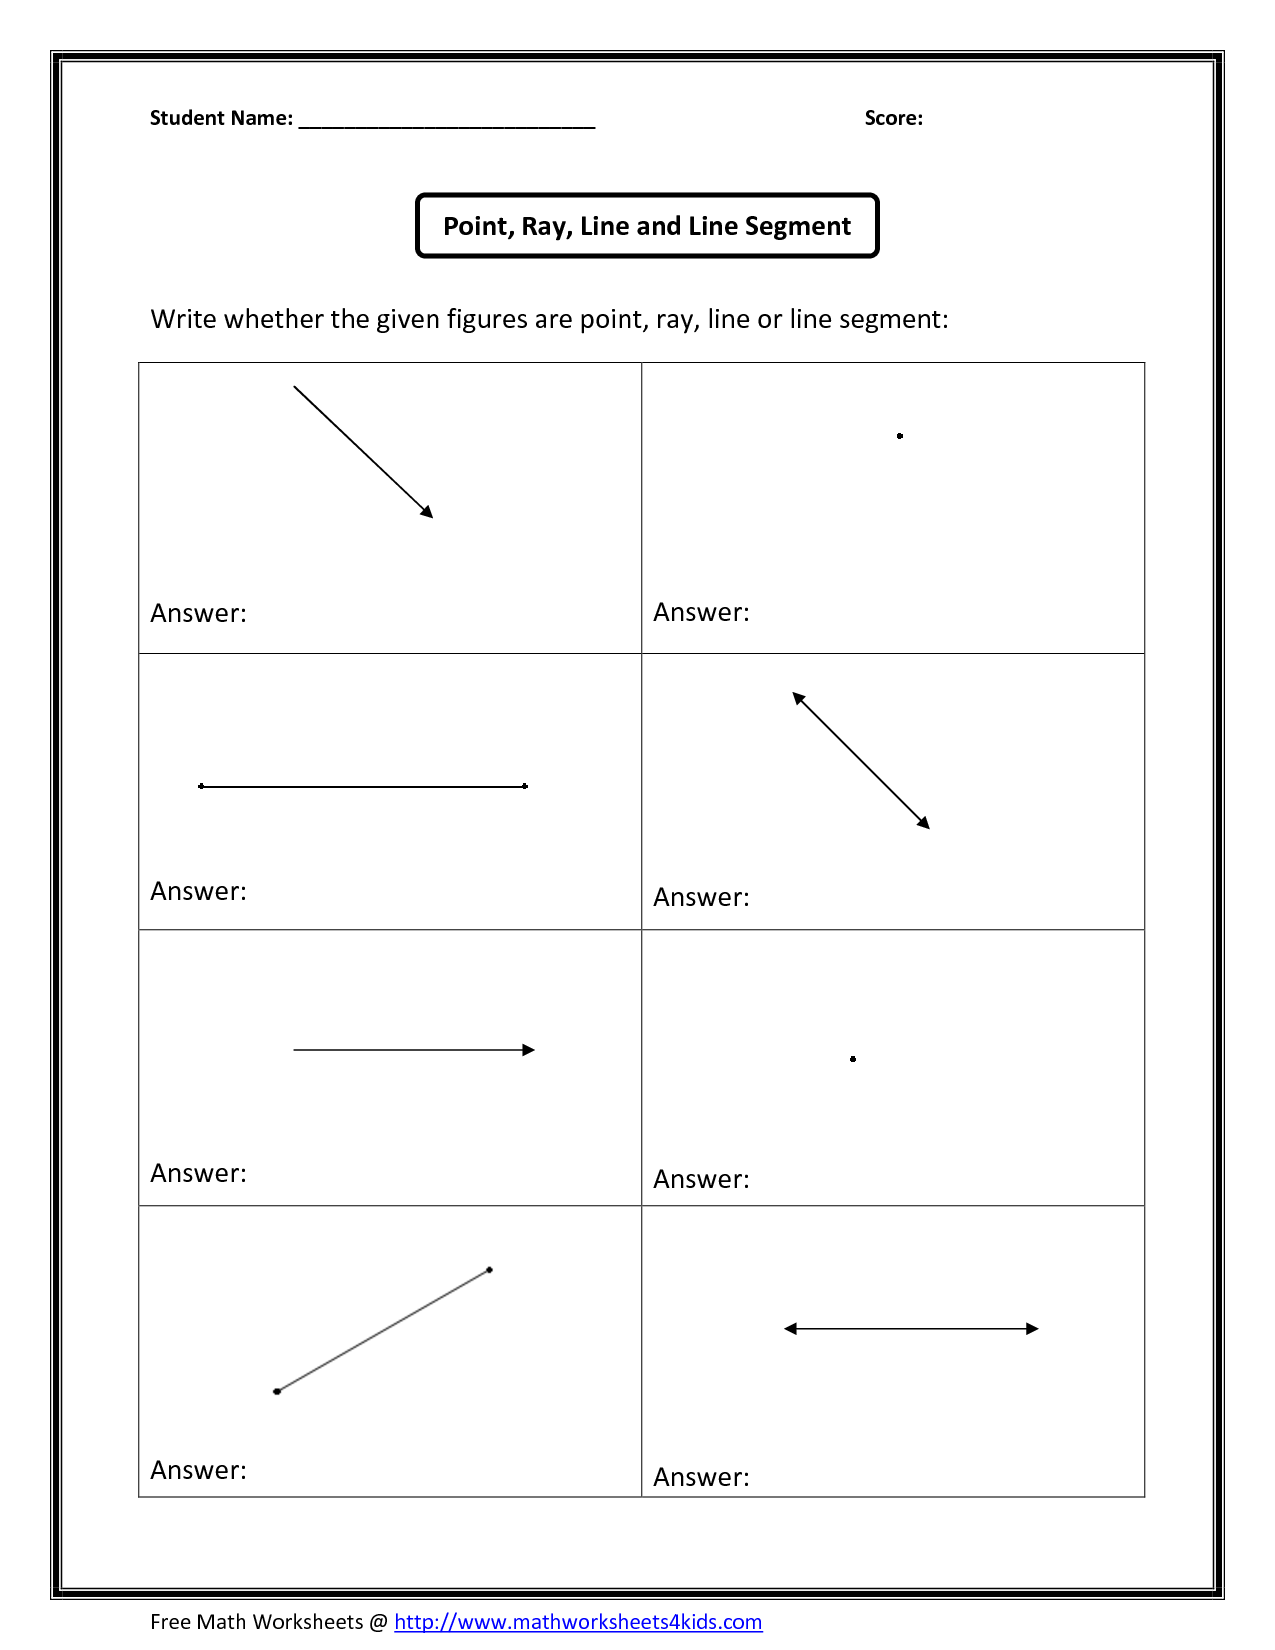 Identifying Lines Segments Rays Points And Worksheet